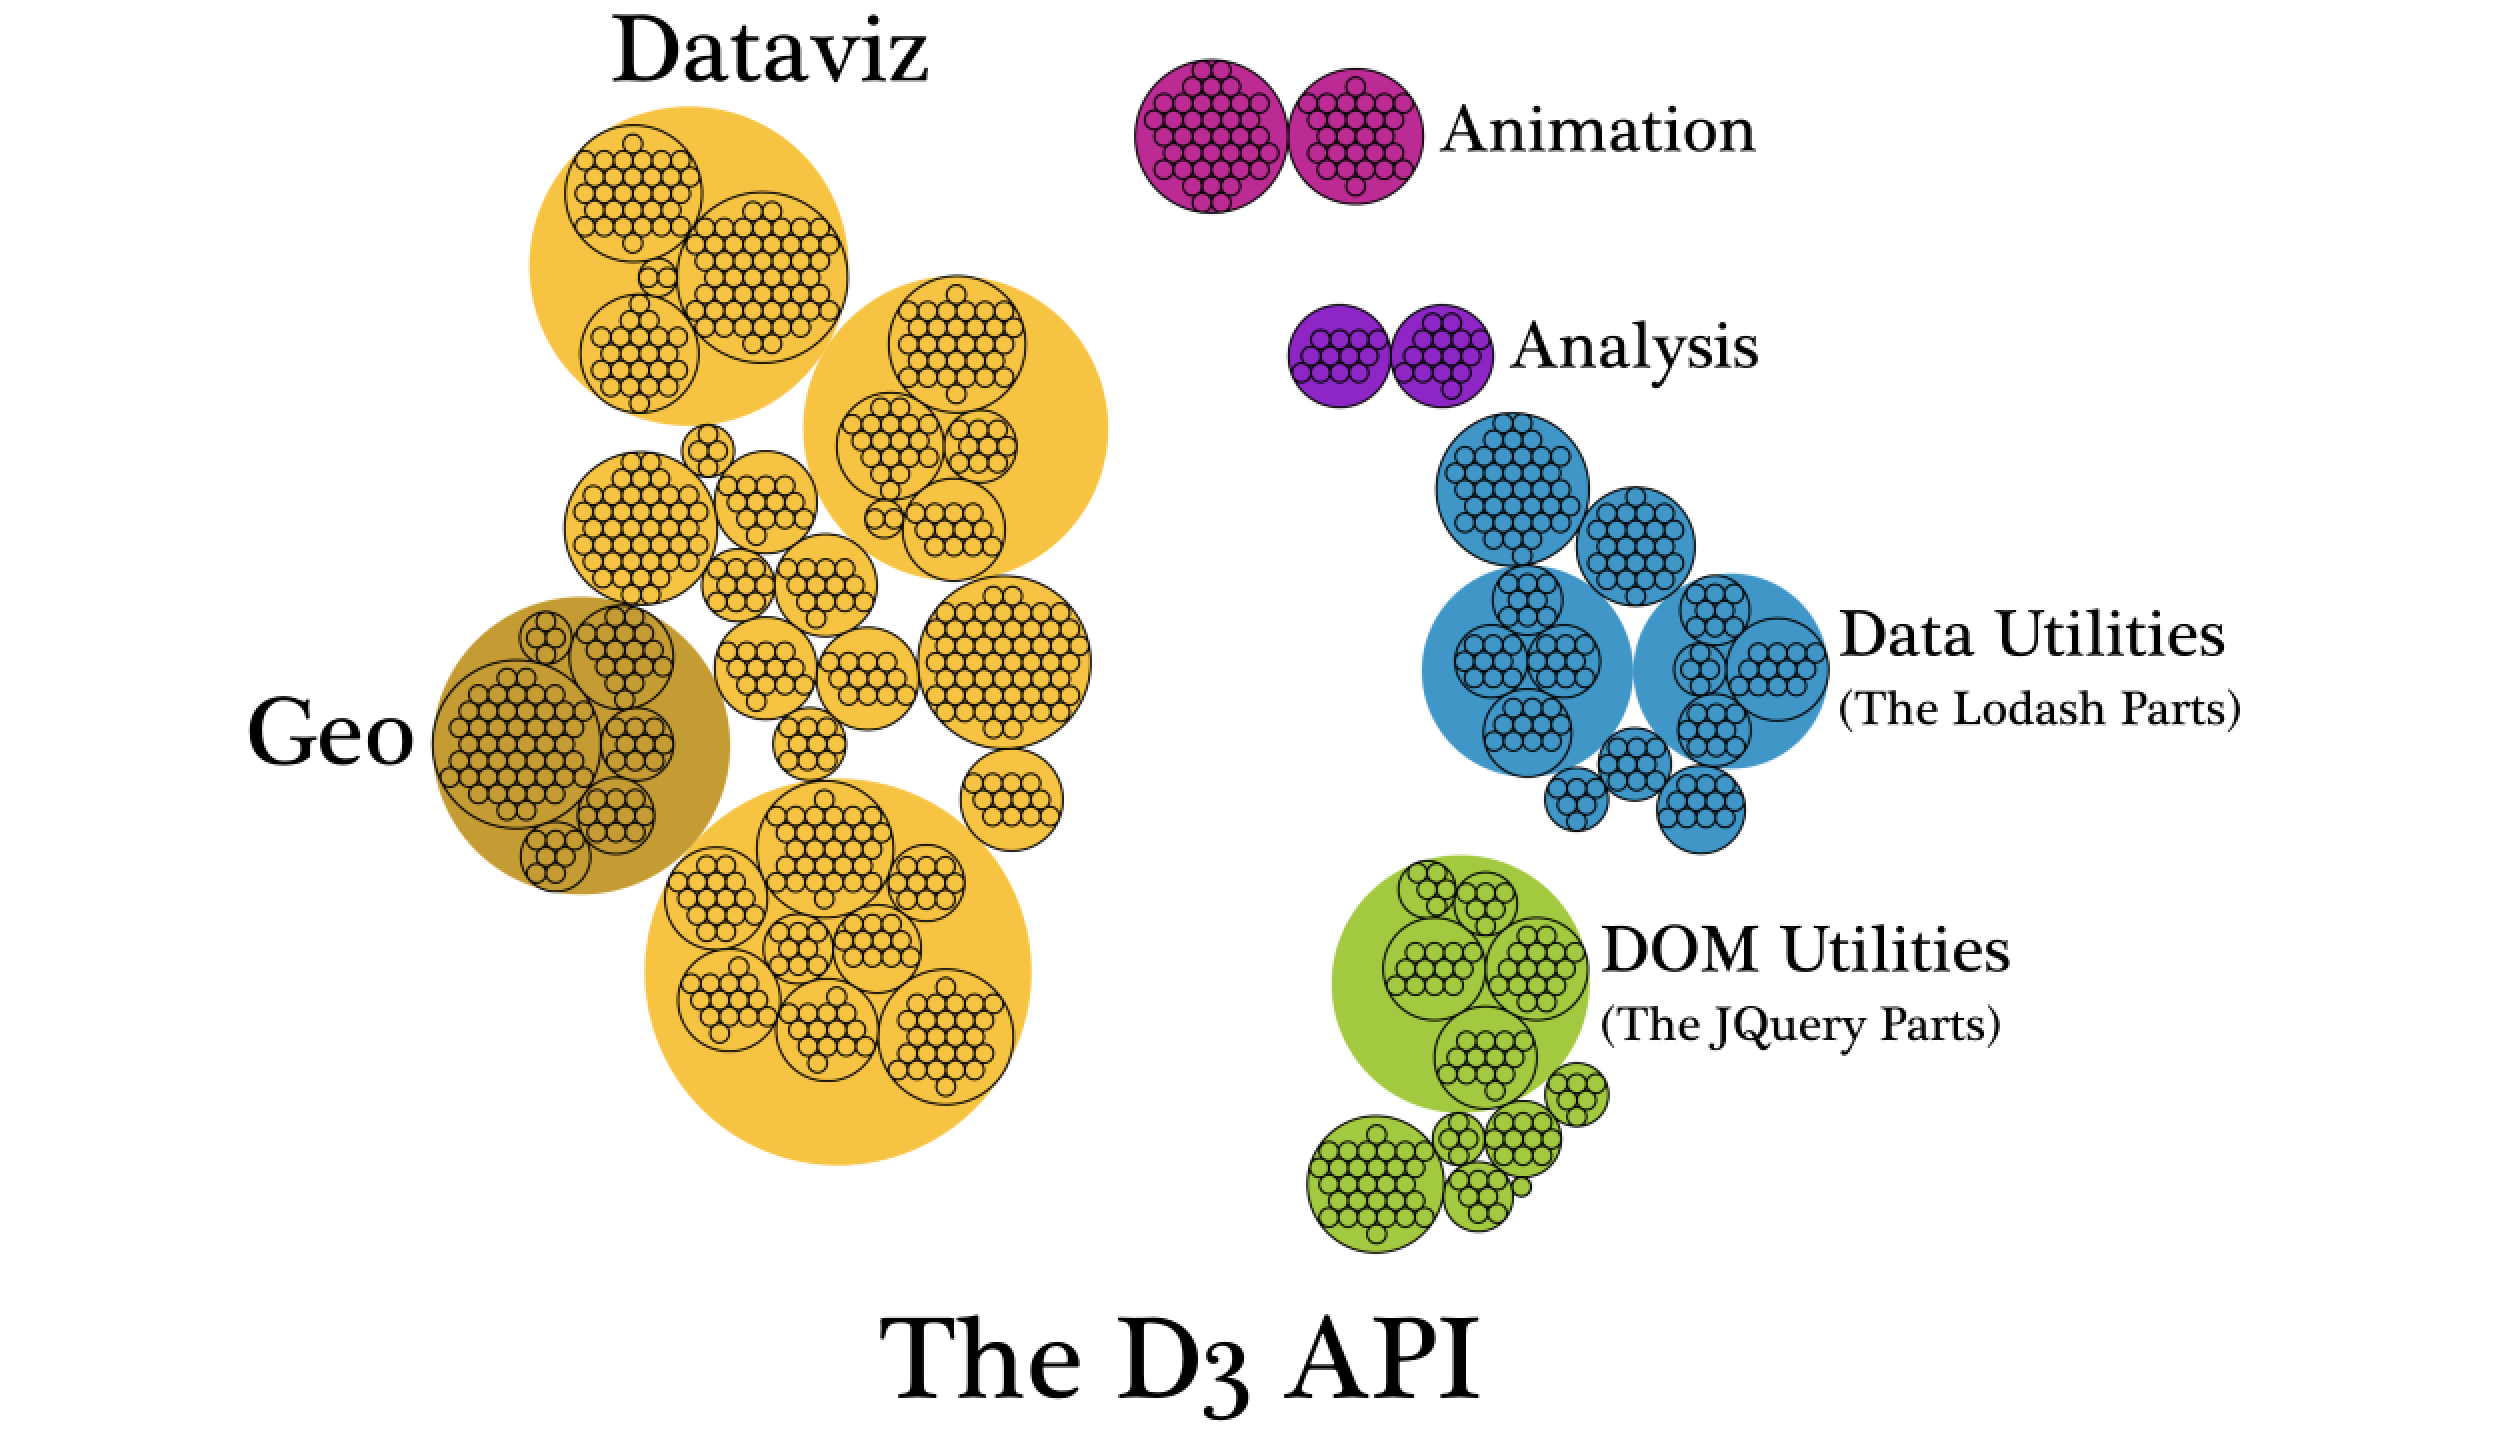 d3 is not a data visualization library